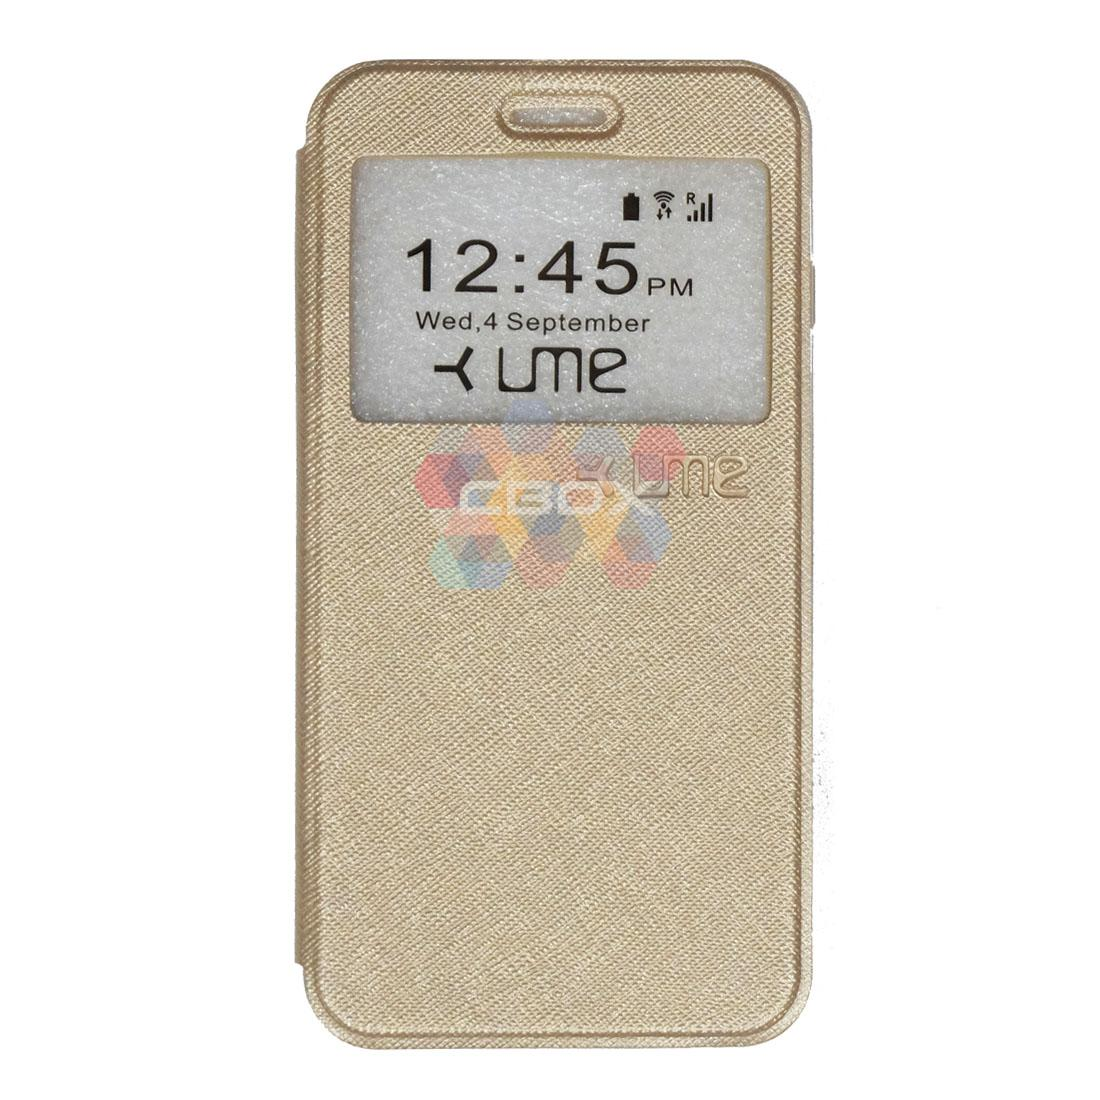 Ume Himax M2 Leather Case Sarung Flipshell Flip Cover Kulit Sarung Case Himax . Source ·